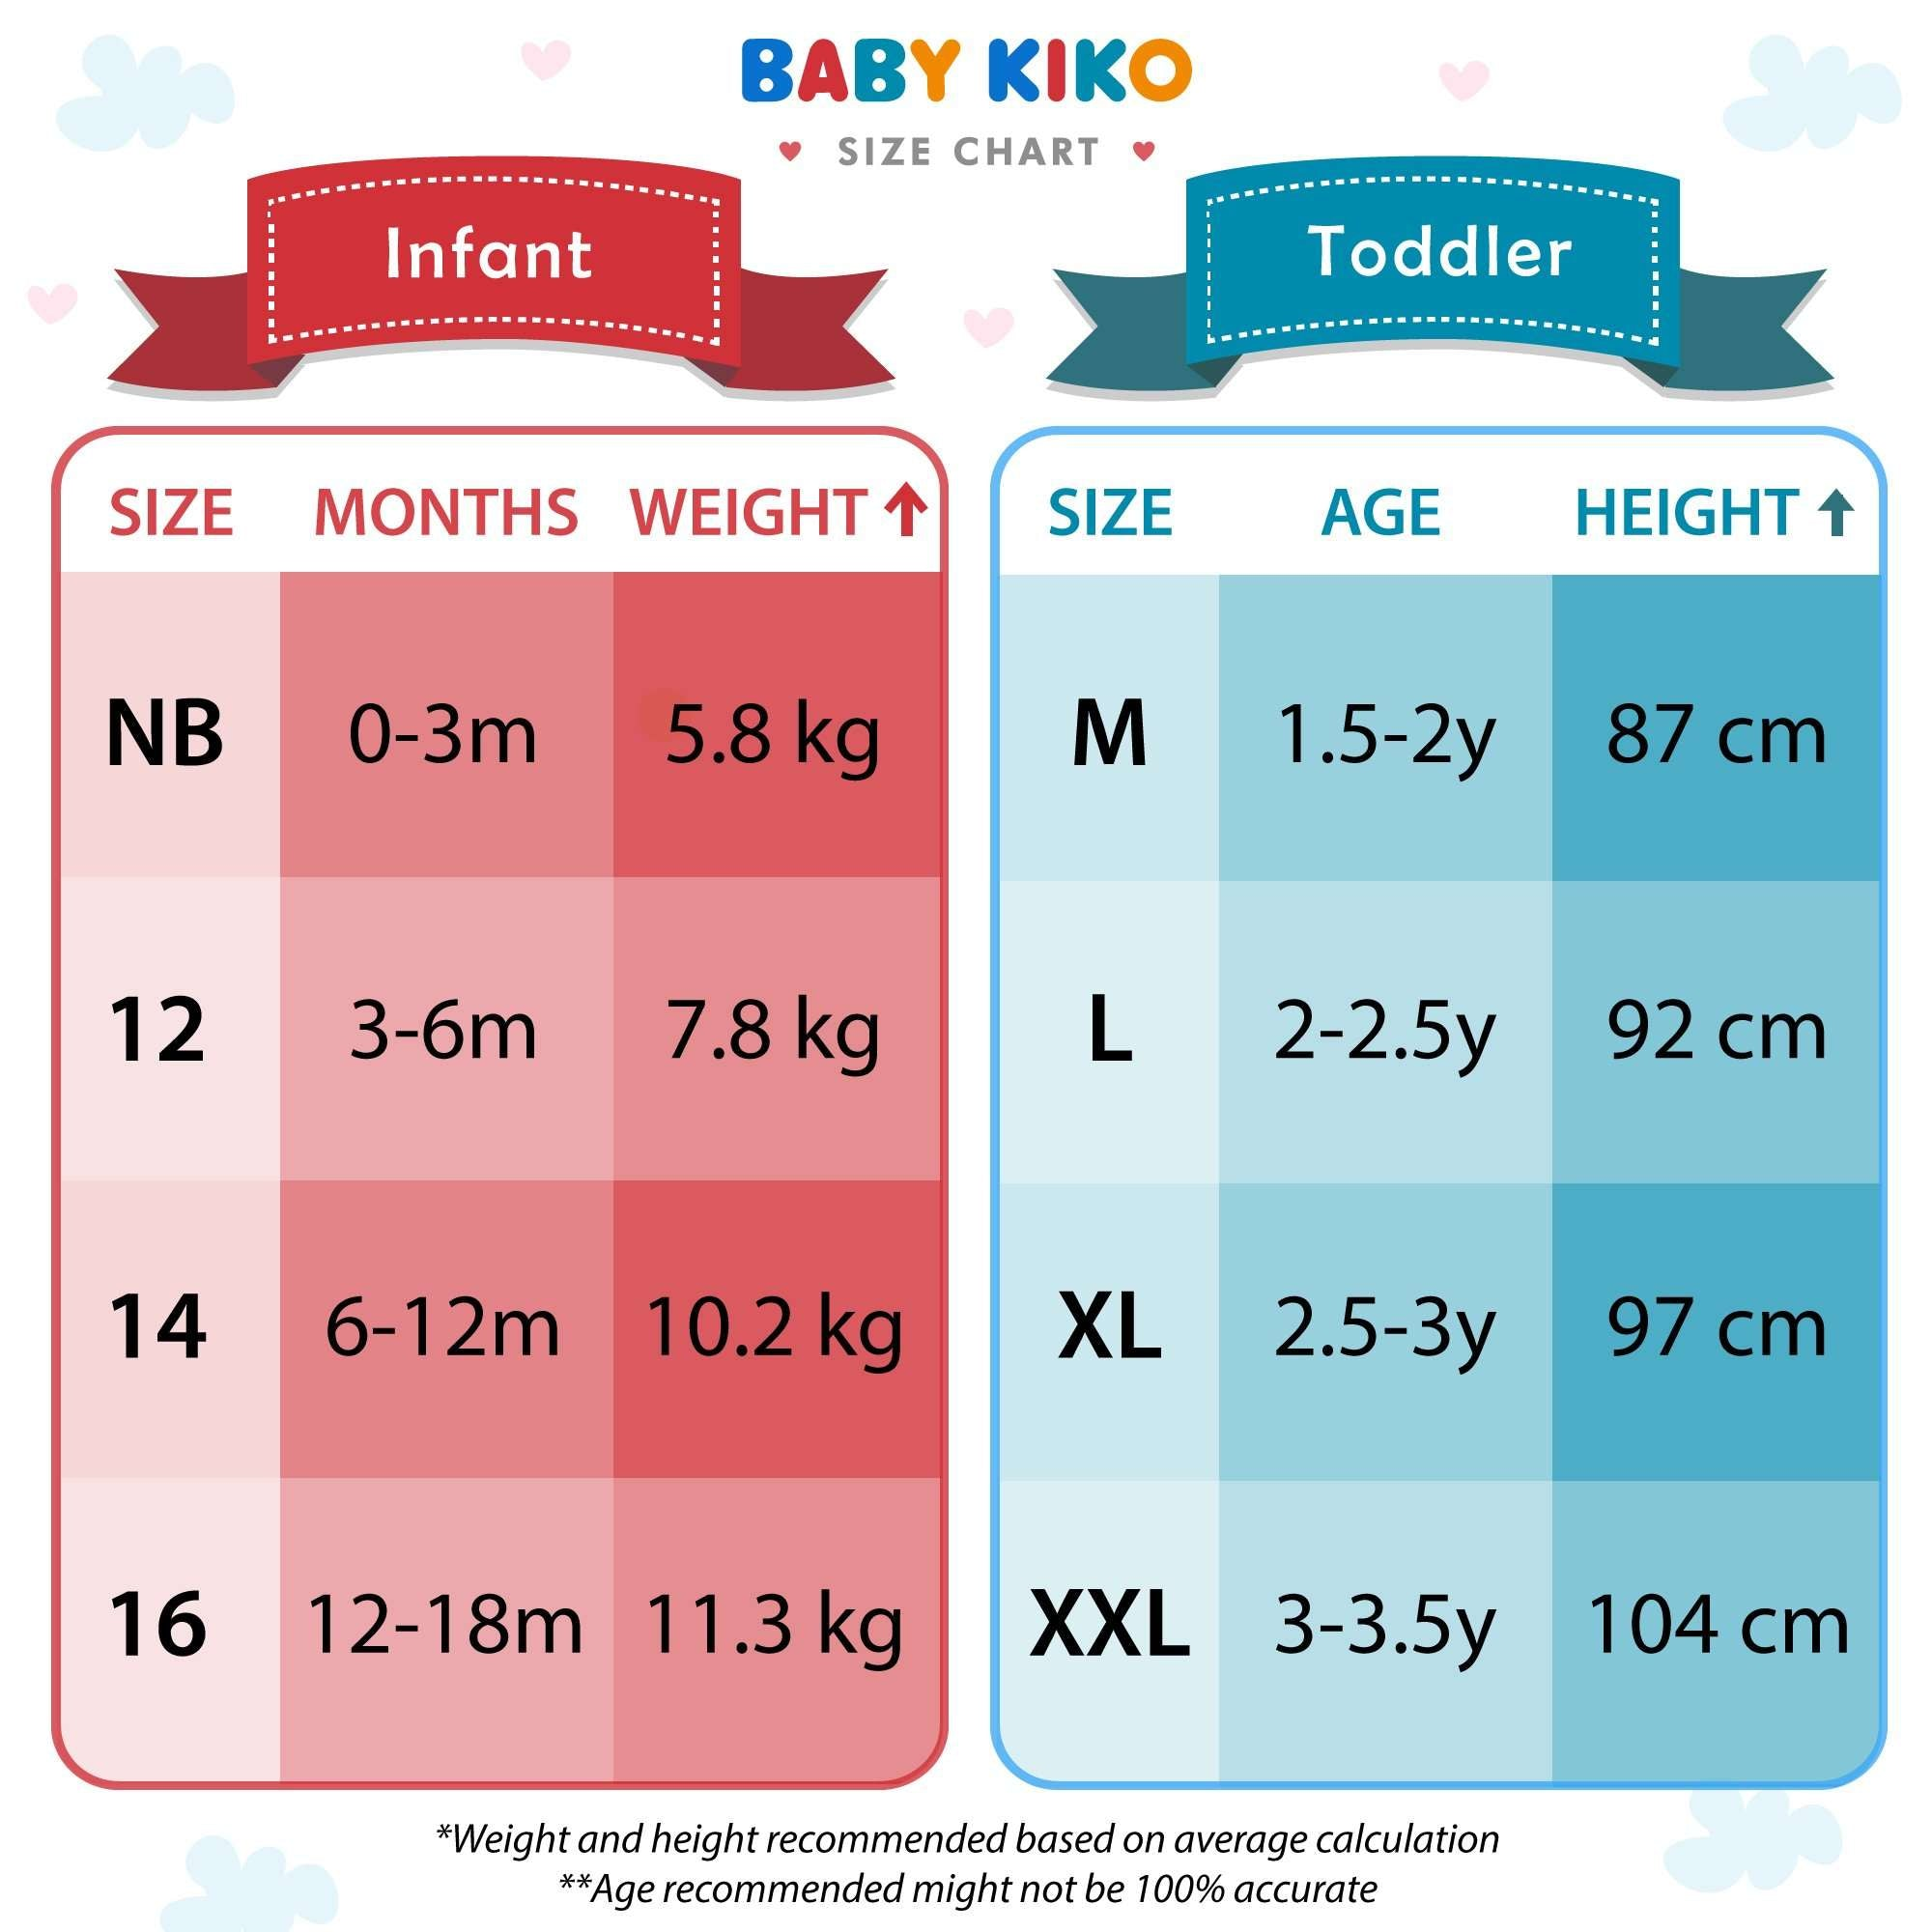 Baby KIKO Baby Girl Short Sleeve Blouse B924001-1429-R5 : Buy Baby KIKO online at CMG.MY